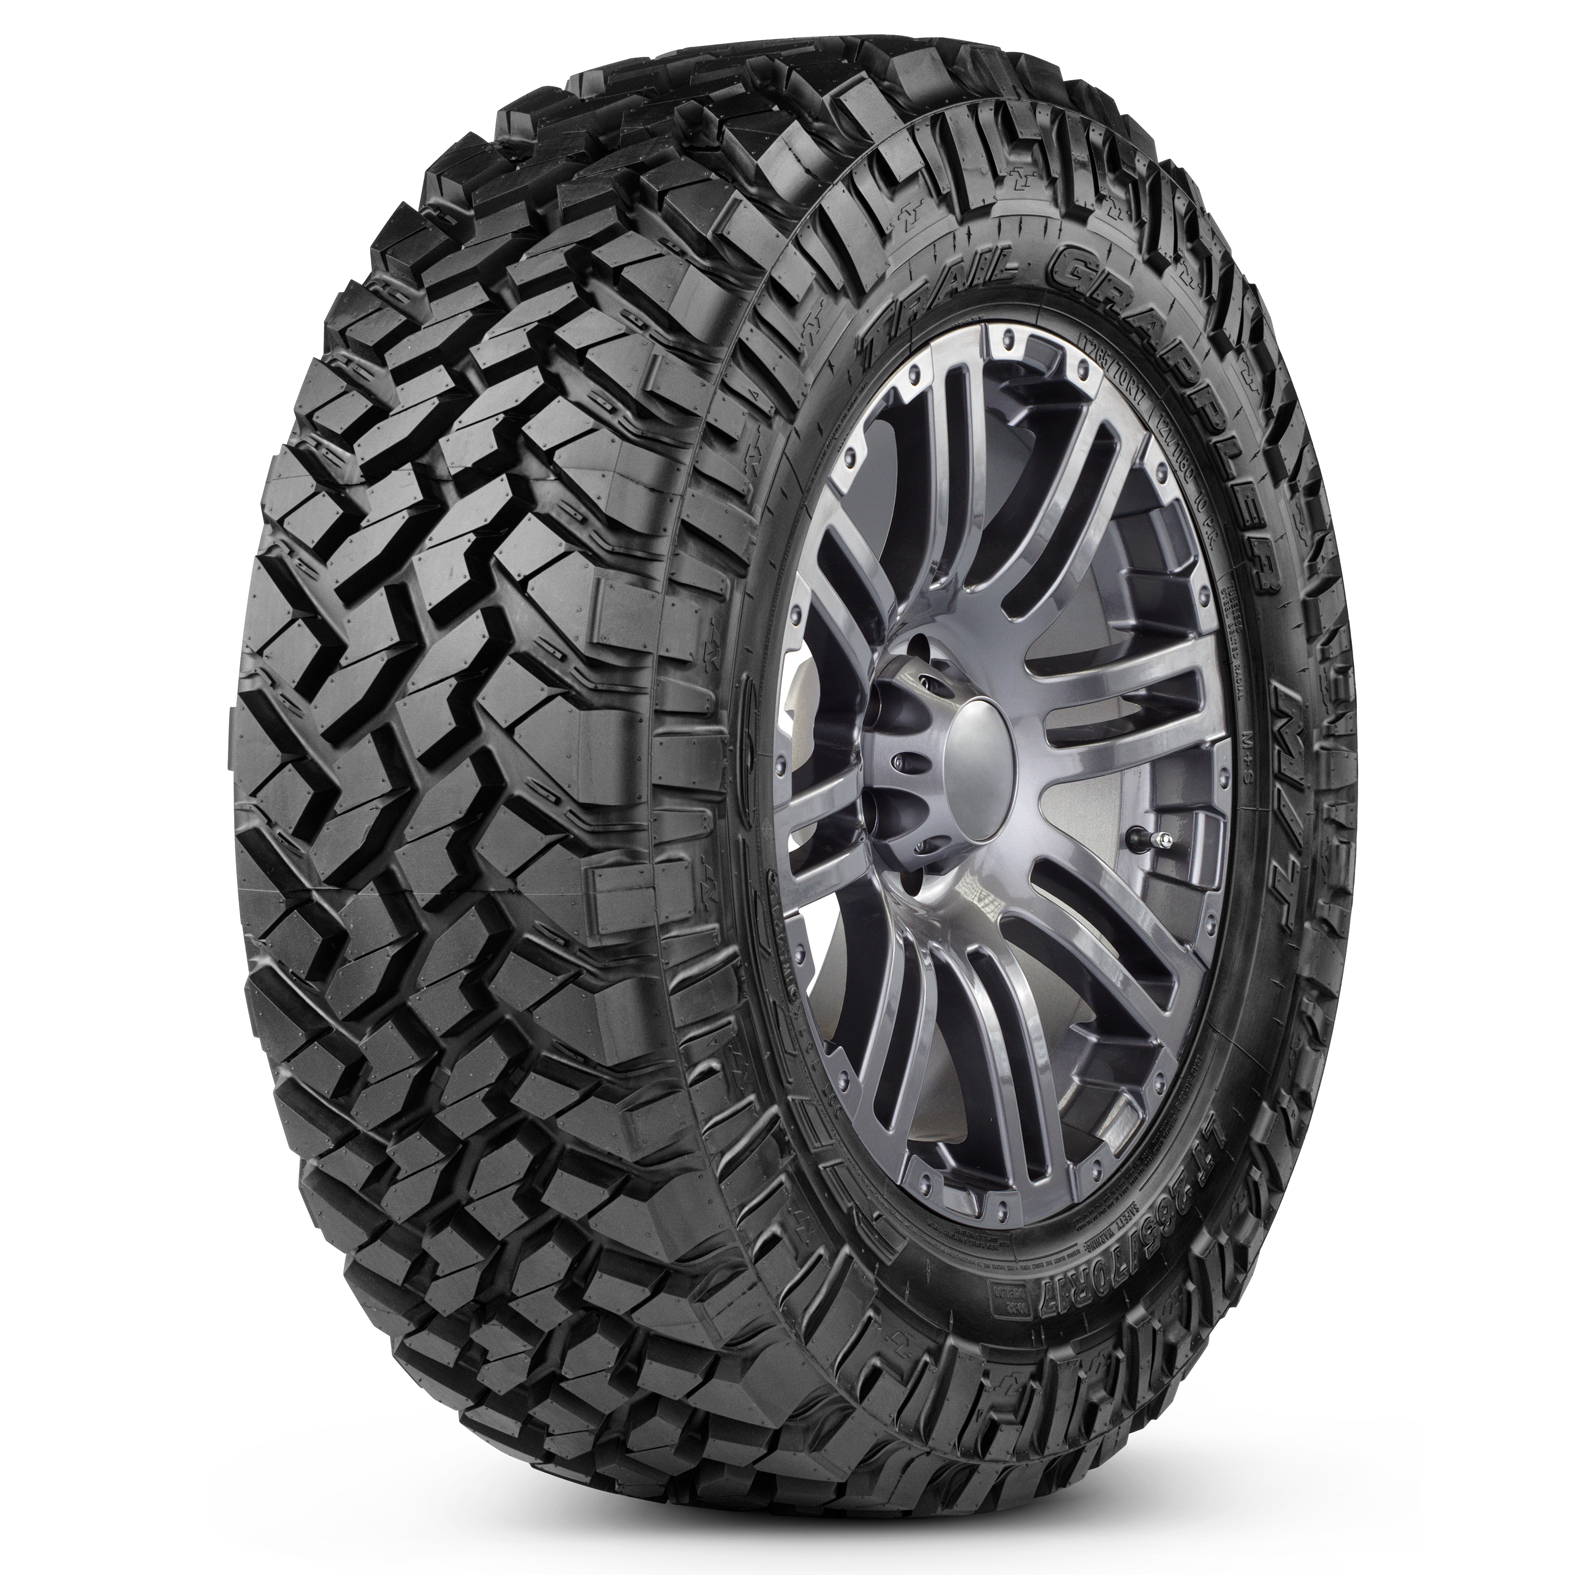 Nitto Trail Grappler M/T tire - angle